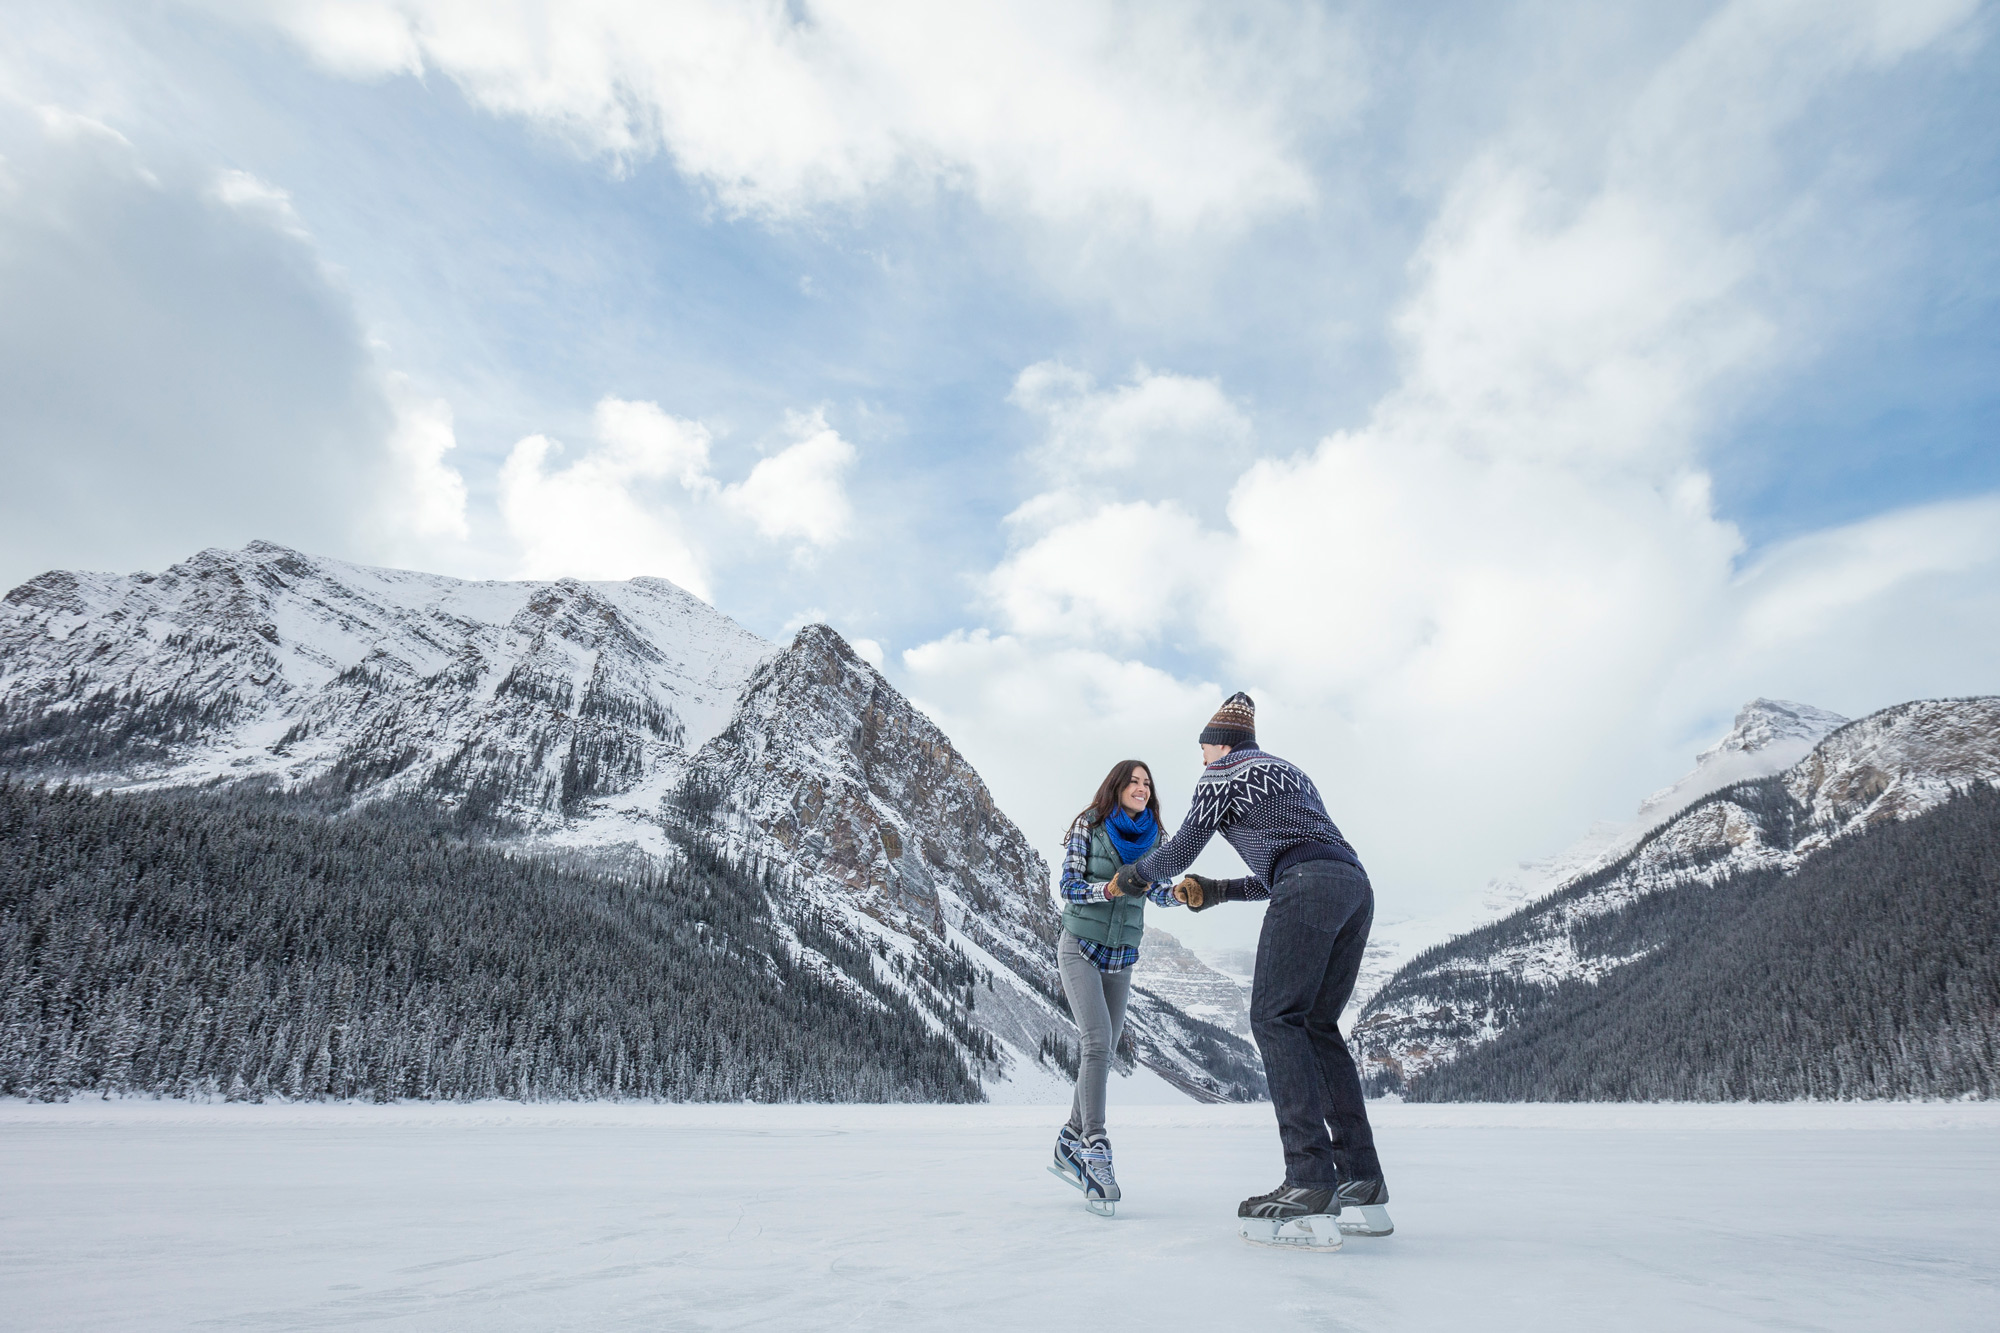 the many lakes in Banff National Park freeze over in winter, providing ice skating for visitors.